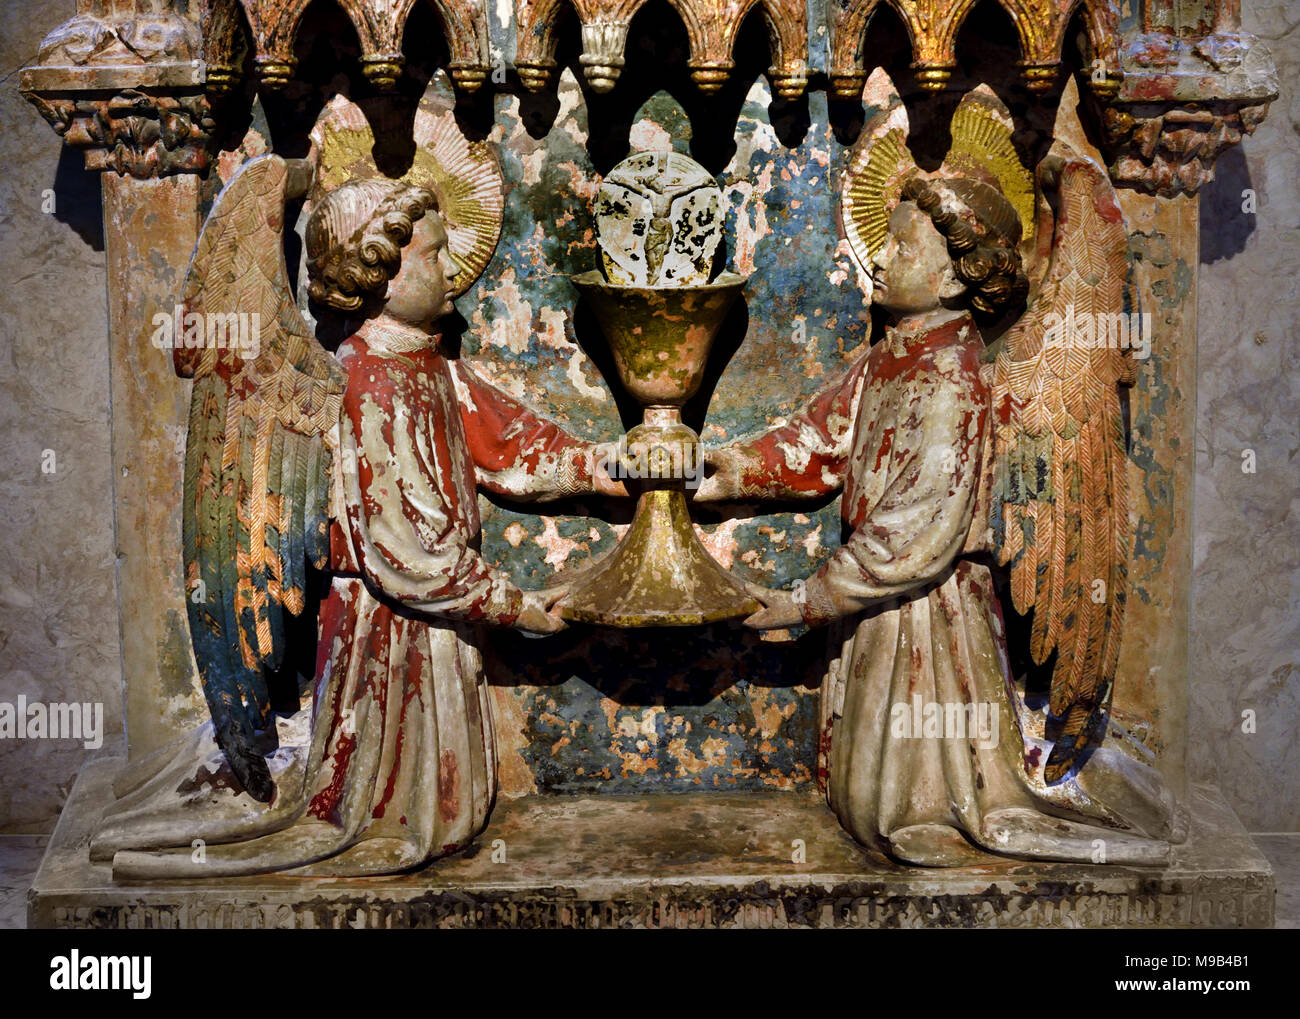 Corpus Christi Retable 1443 sculptor João Afonso, Portugal, Portuguese, Coimbra ( Corpus Christi chapel located in the center of the Jewish quarter ) relief where two kneeling  raise the Eucharistic chalice with the Host, - Stock Image